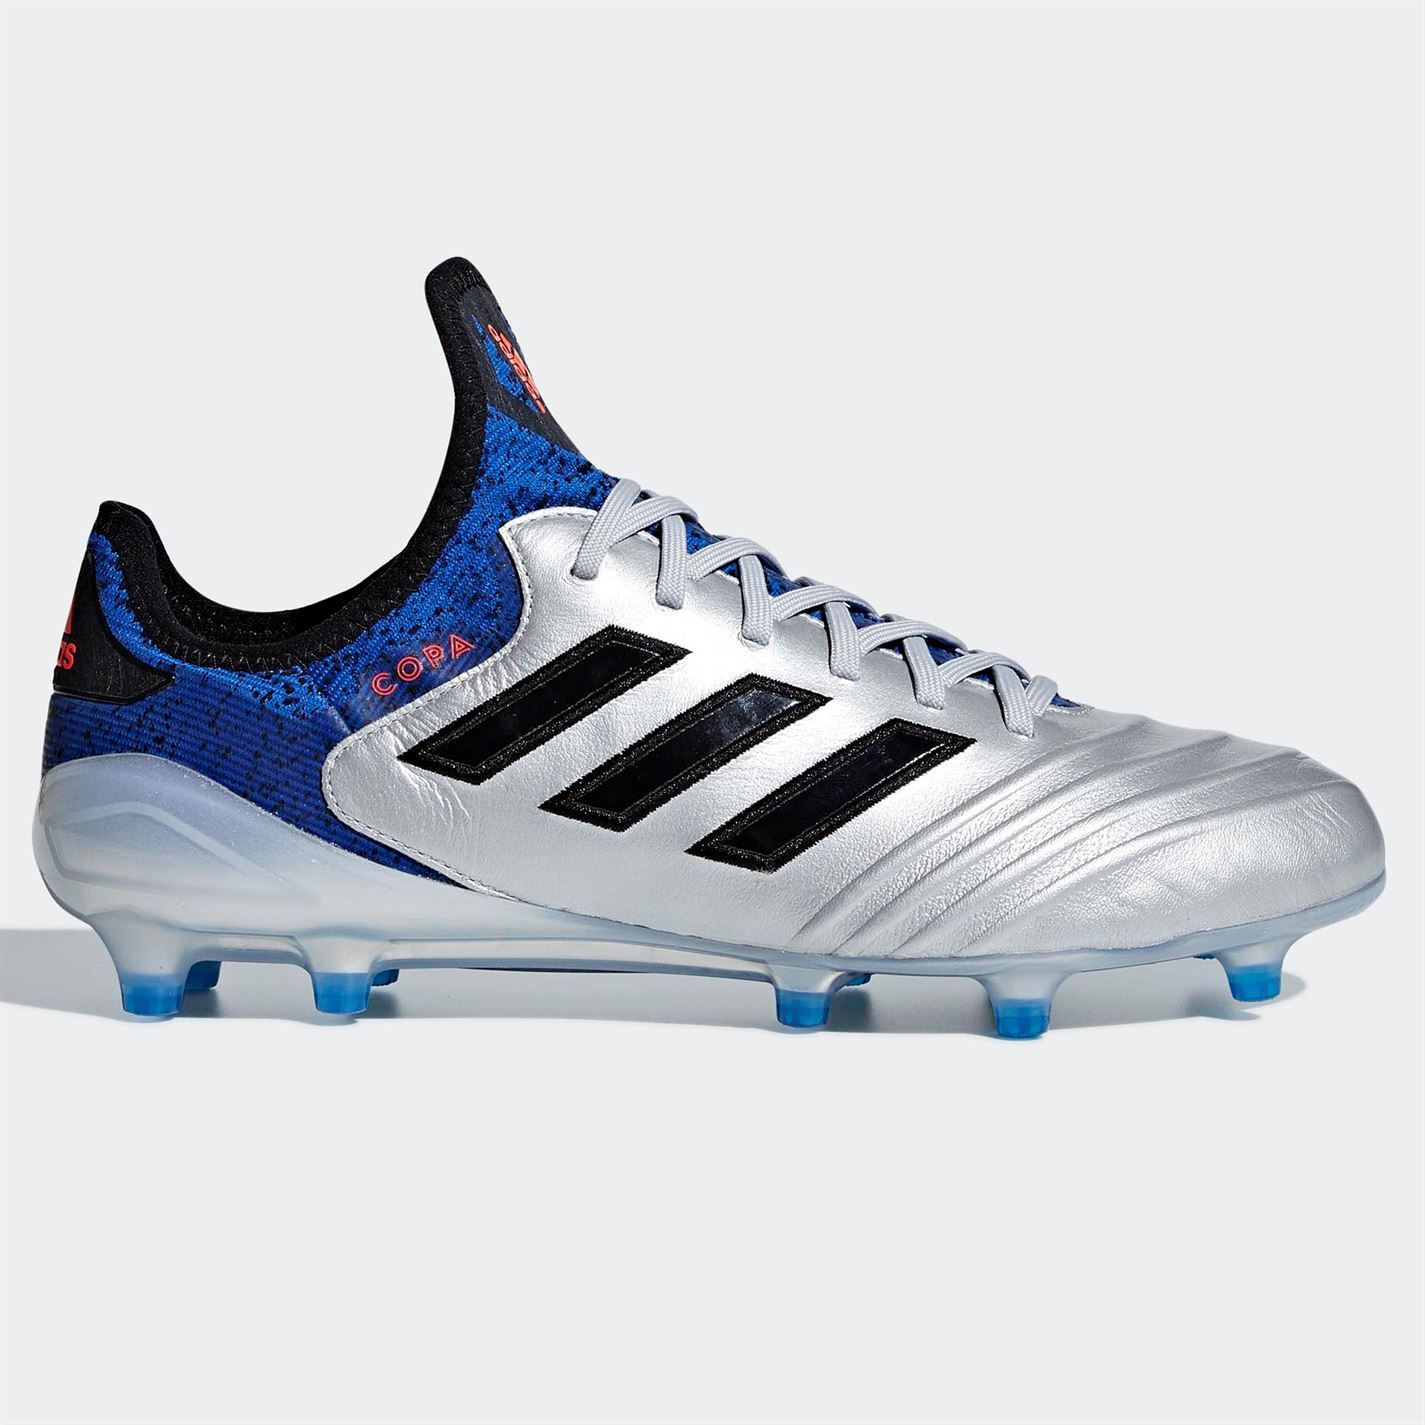 7b3bbb0a245b adidas Copa 18.1 FG Firm Ground Football Boots Mens Soccer Shoes ...